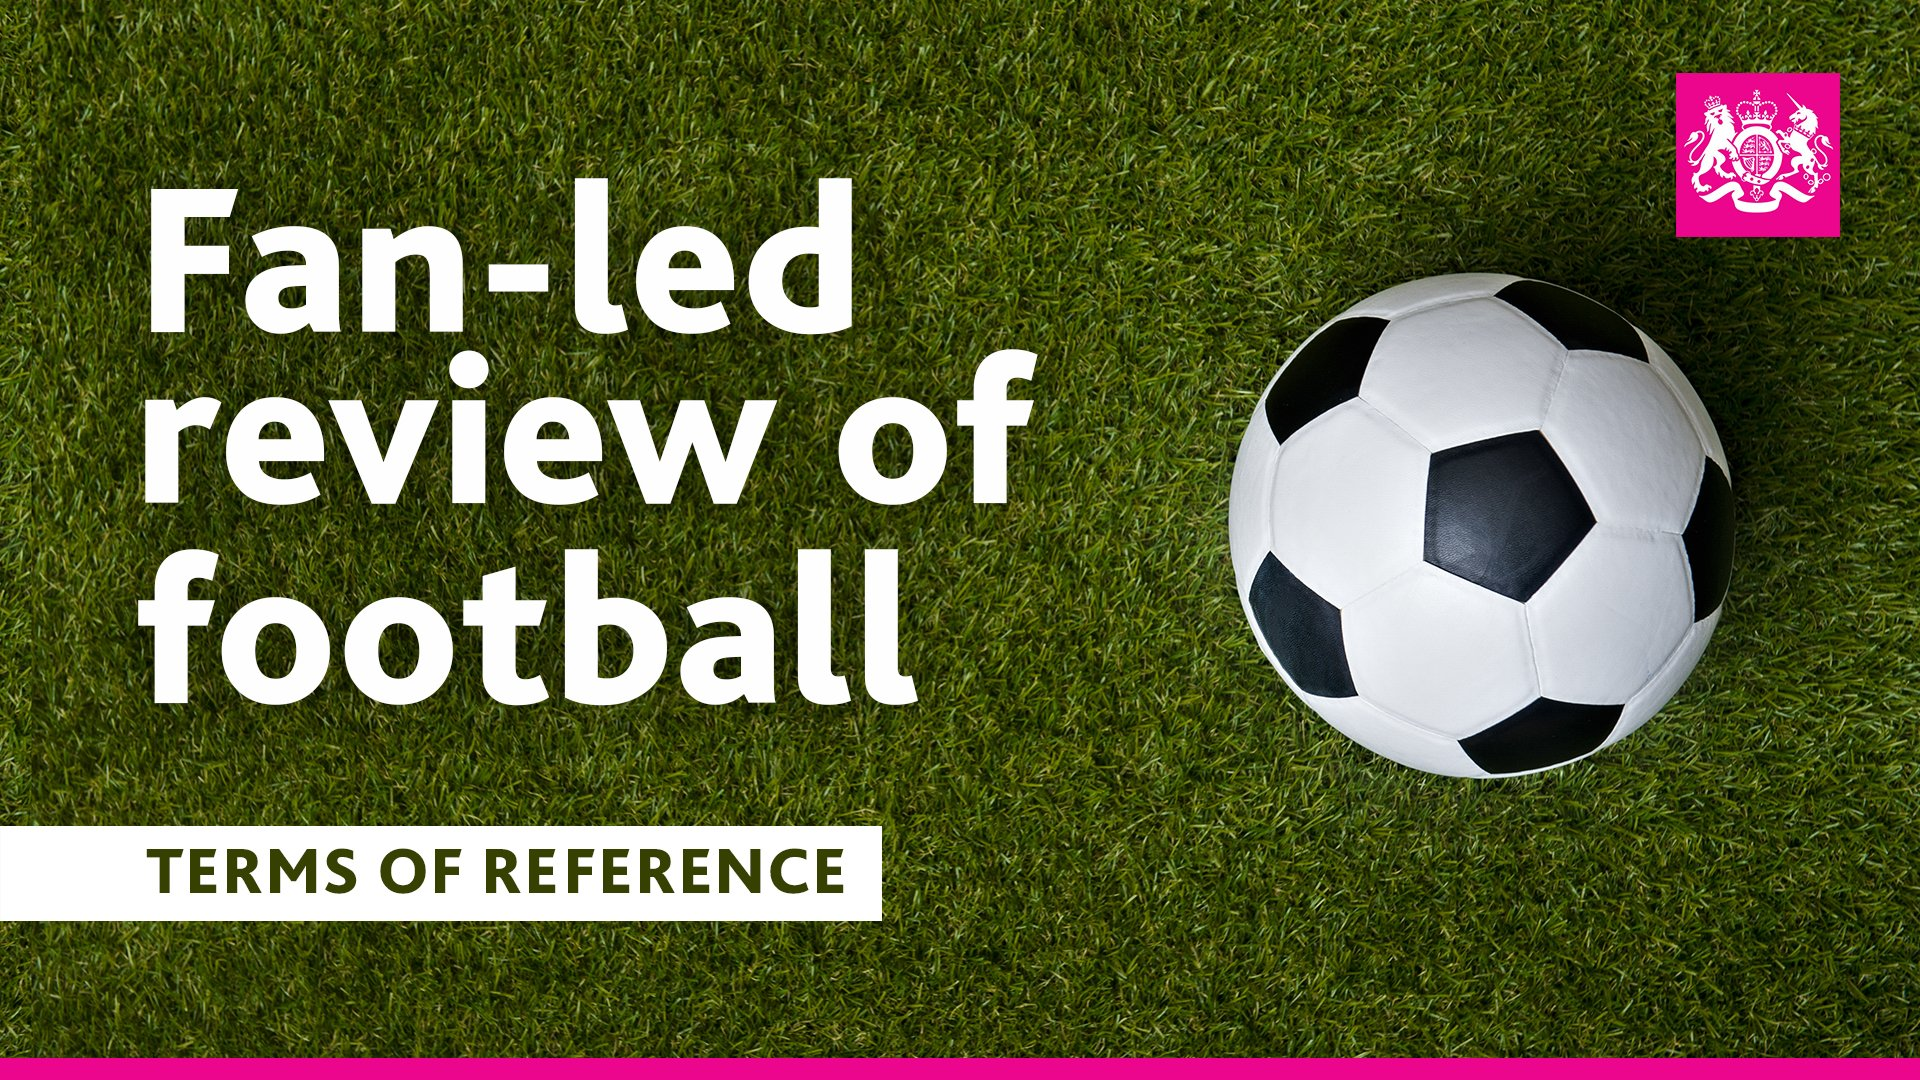 Government announces terms of reference for fan-led review of football